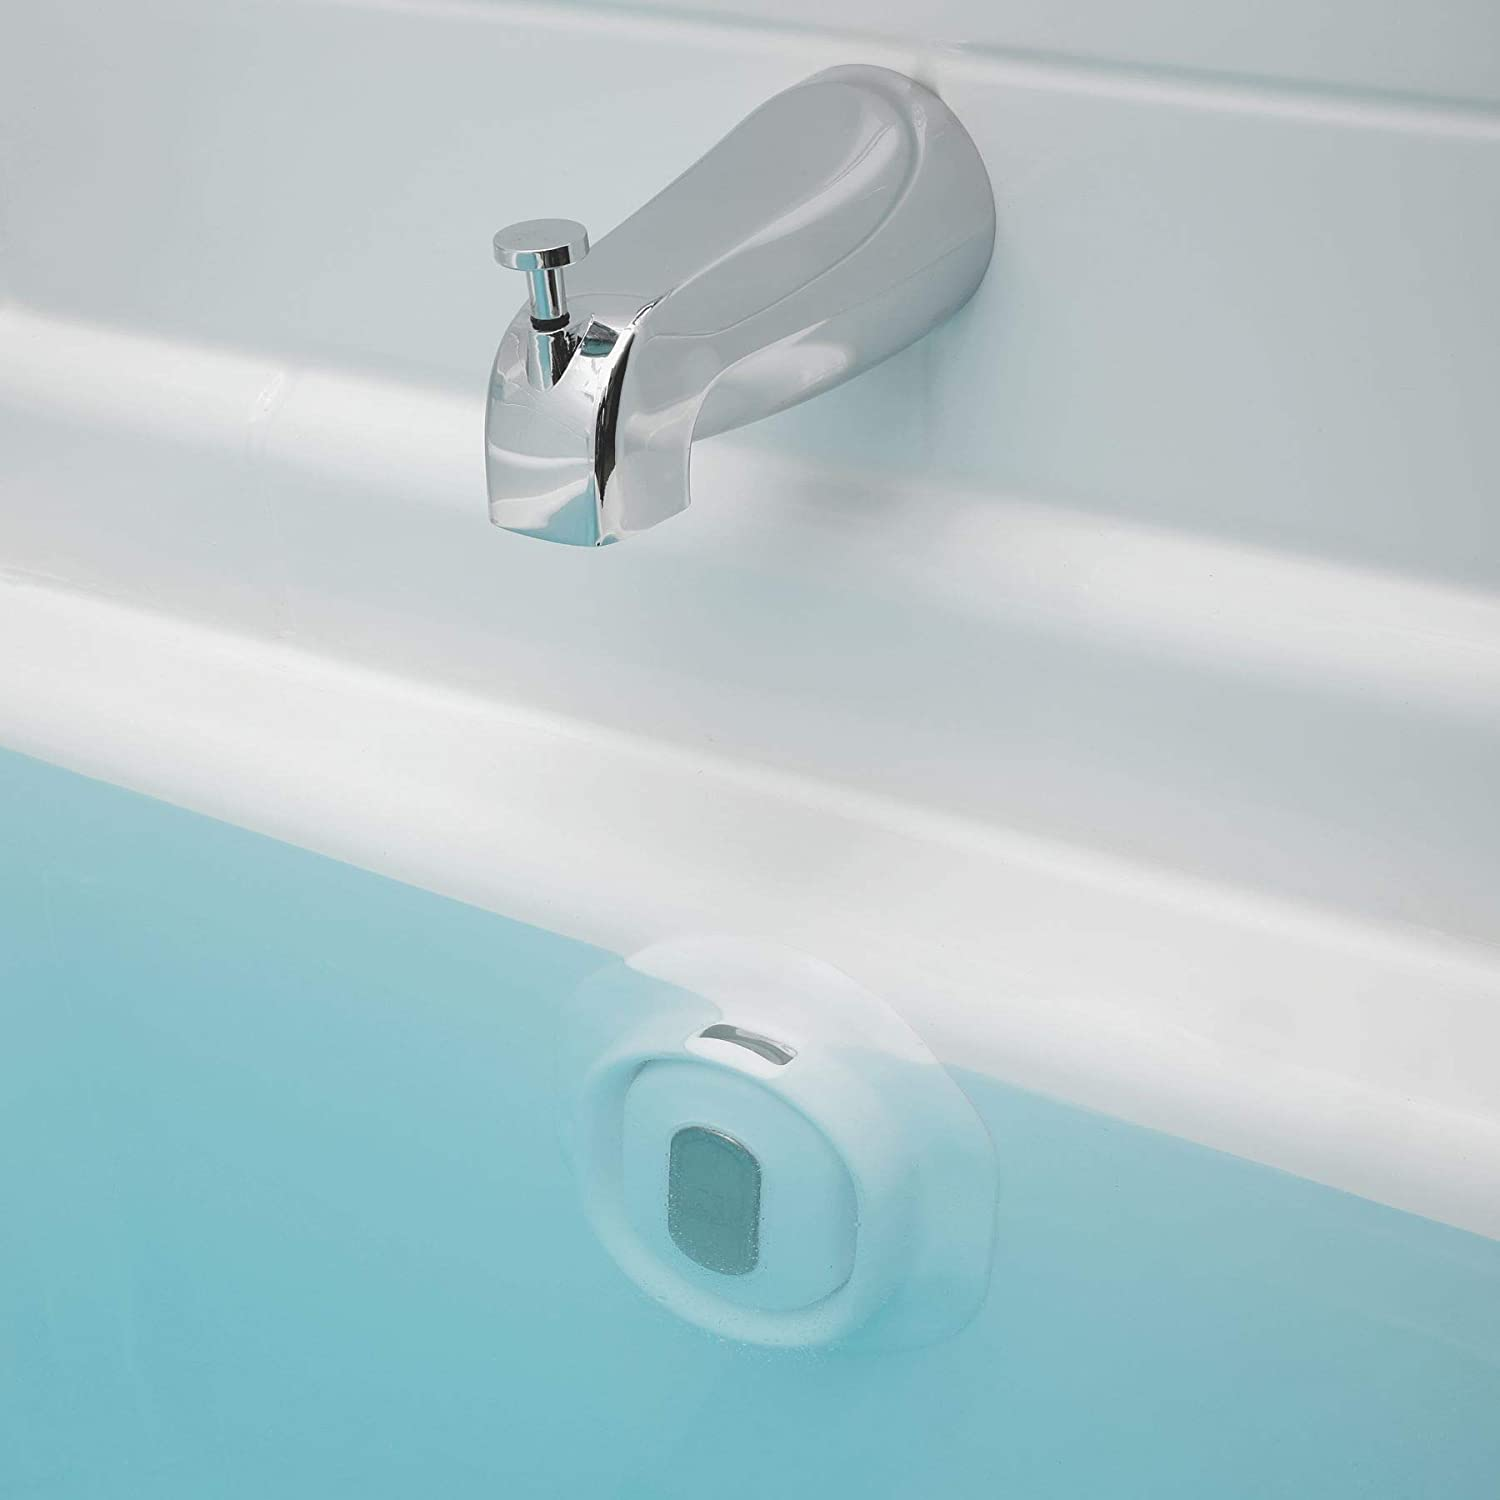 Bottomless Bath Overflow Drain Cover Adds Inches of Water to Tub for Warmer